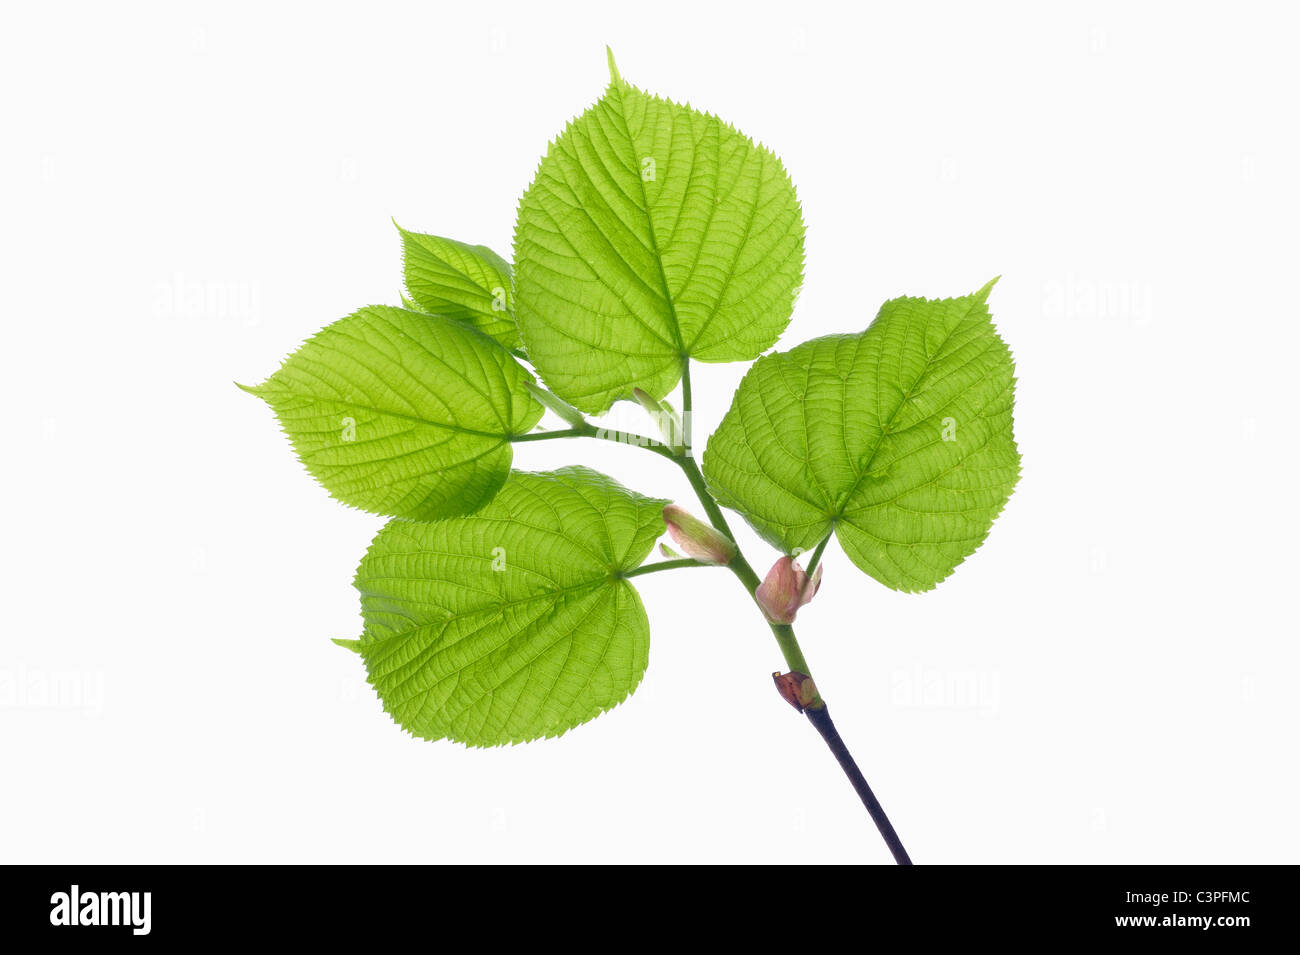 Lime leaf (Tilia spec.), close-up - Stock Image